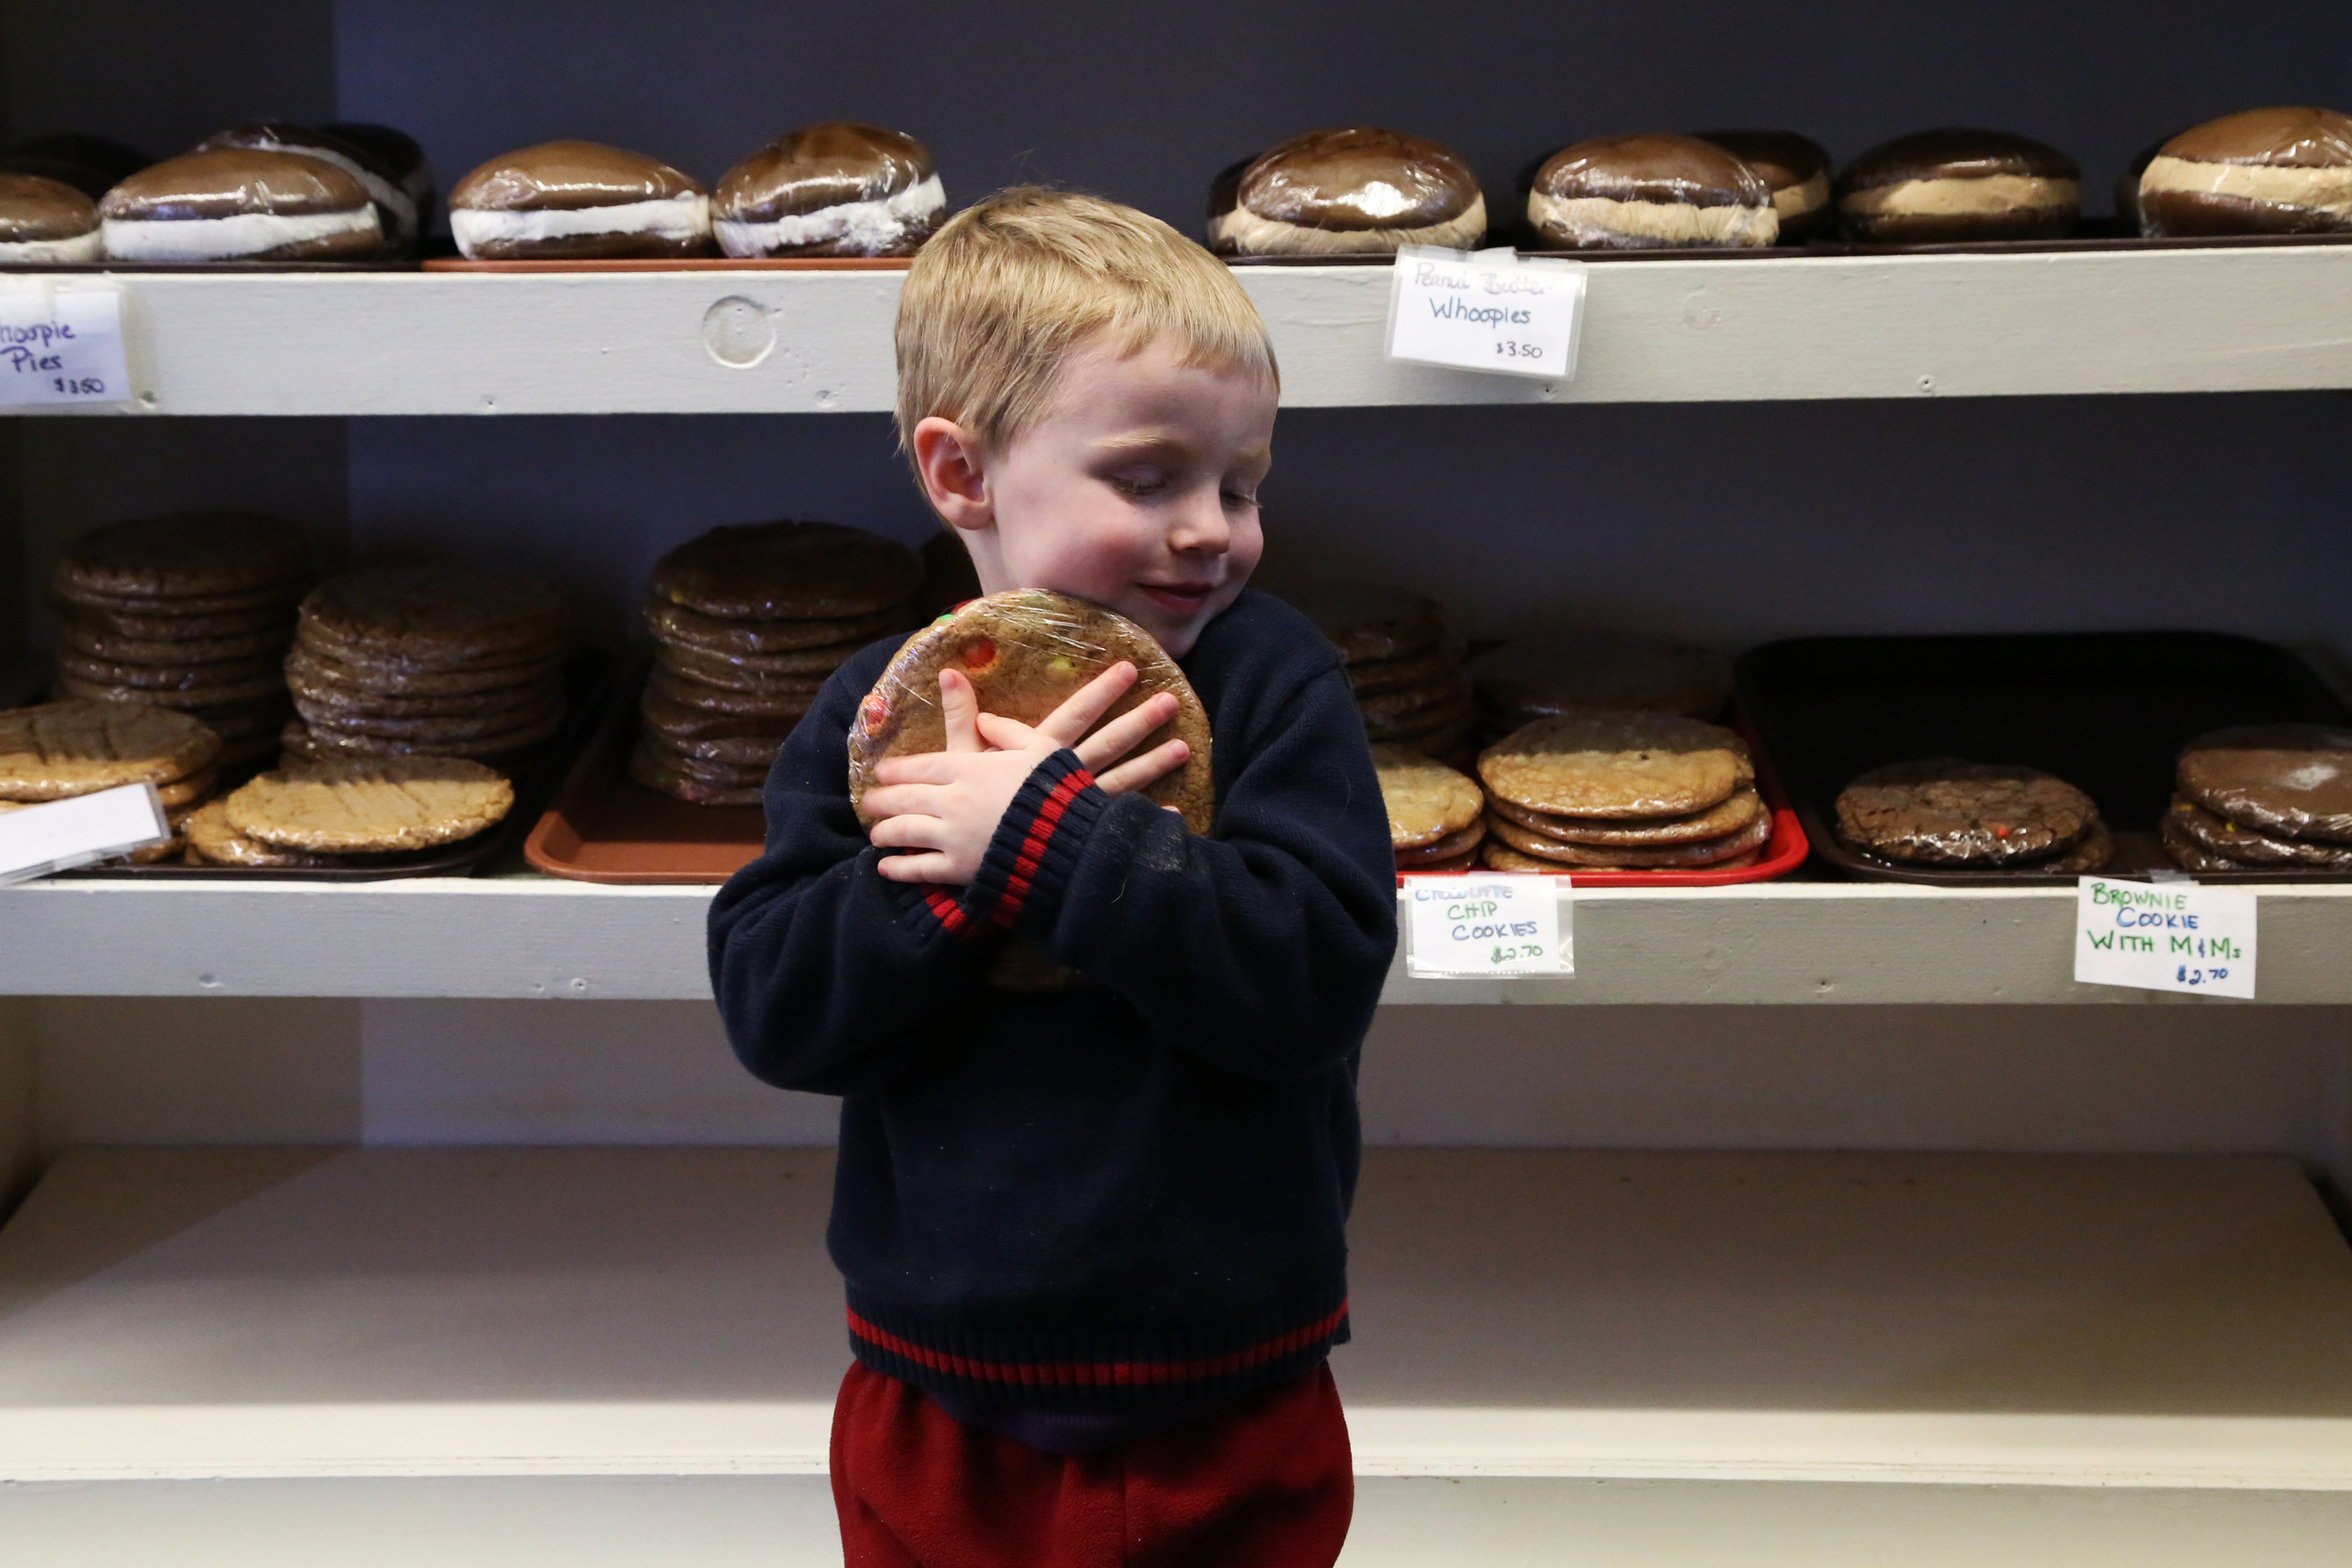 There's a special bond between a boy and his cookie.